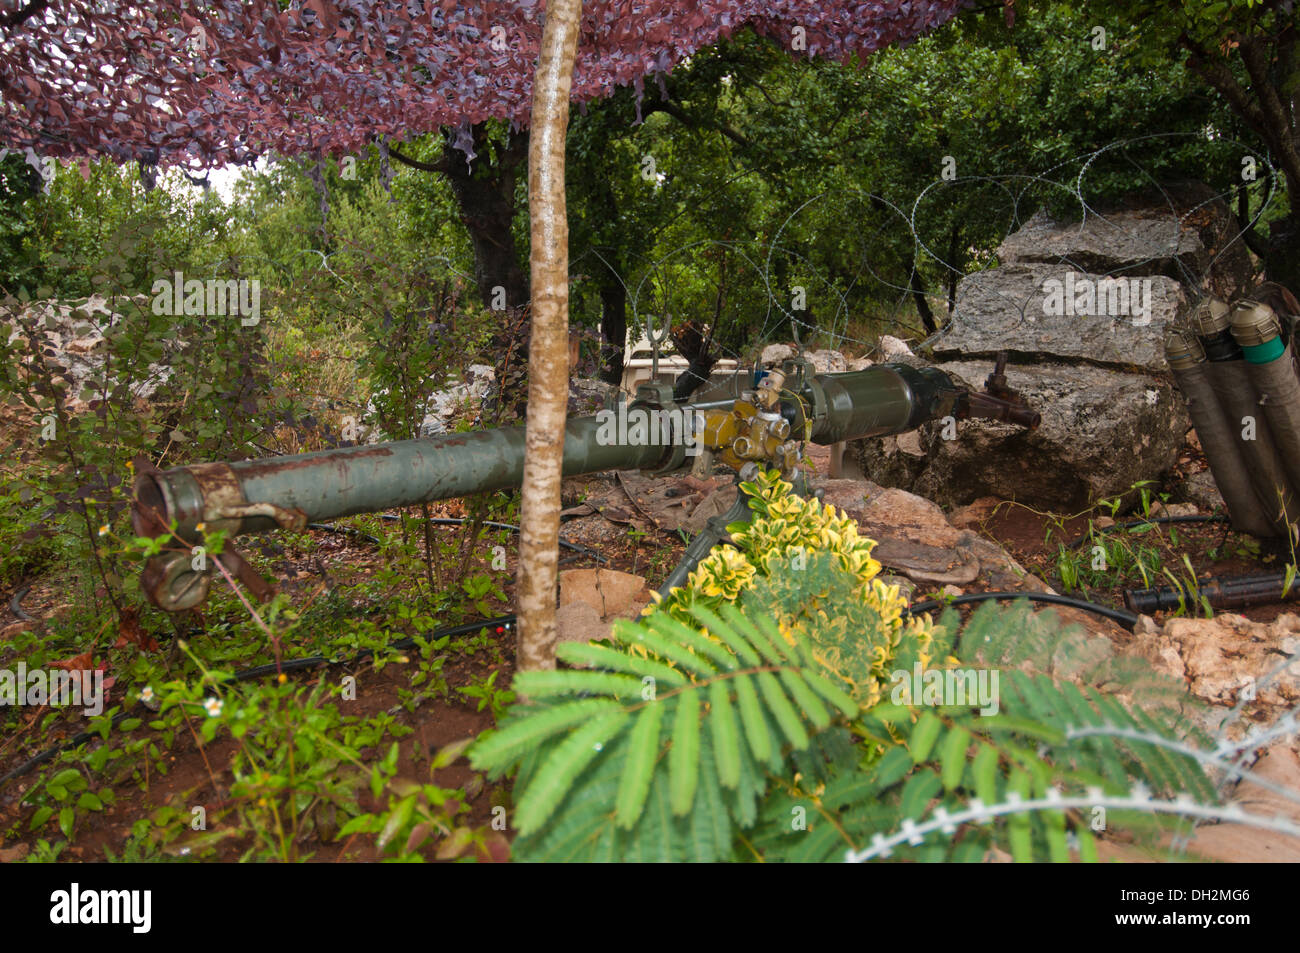 B-10k recoilless rifle, RG82 in East Germany, Soviet 82 mm smoothbore recoilless rifle, Mleeta, Hezbollah Museum, South Lebanon - Stock Image